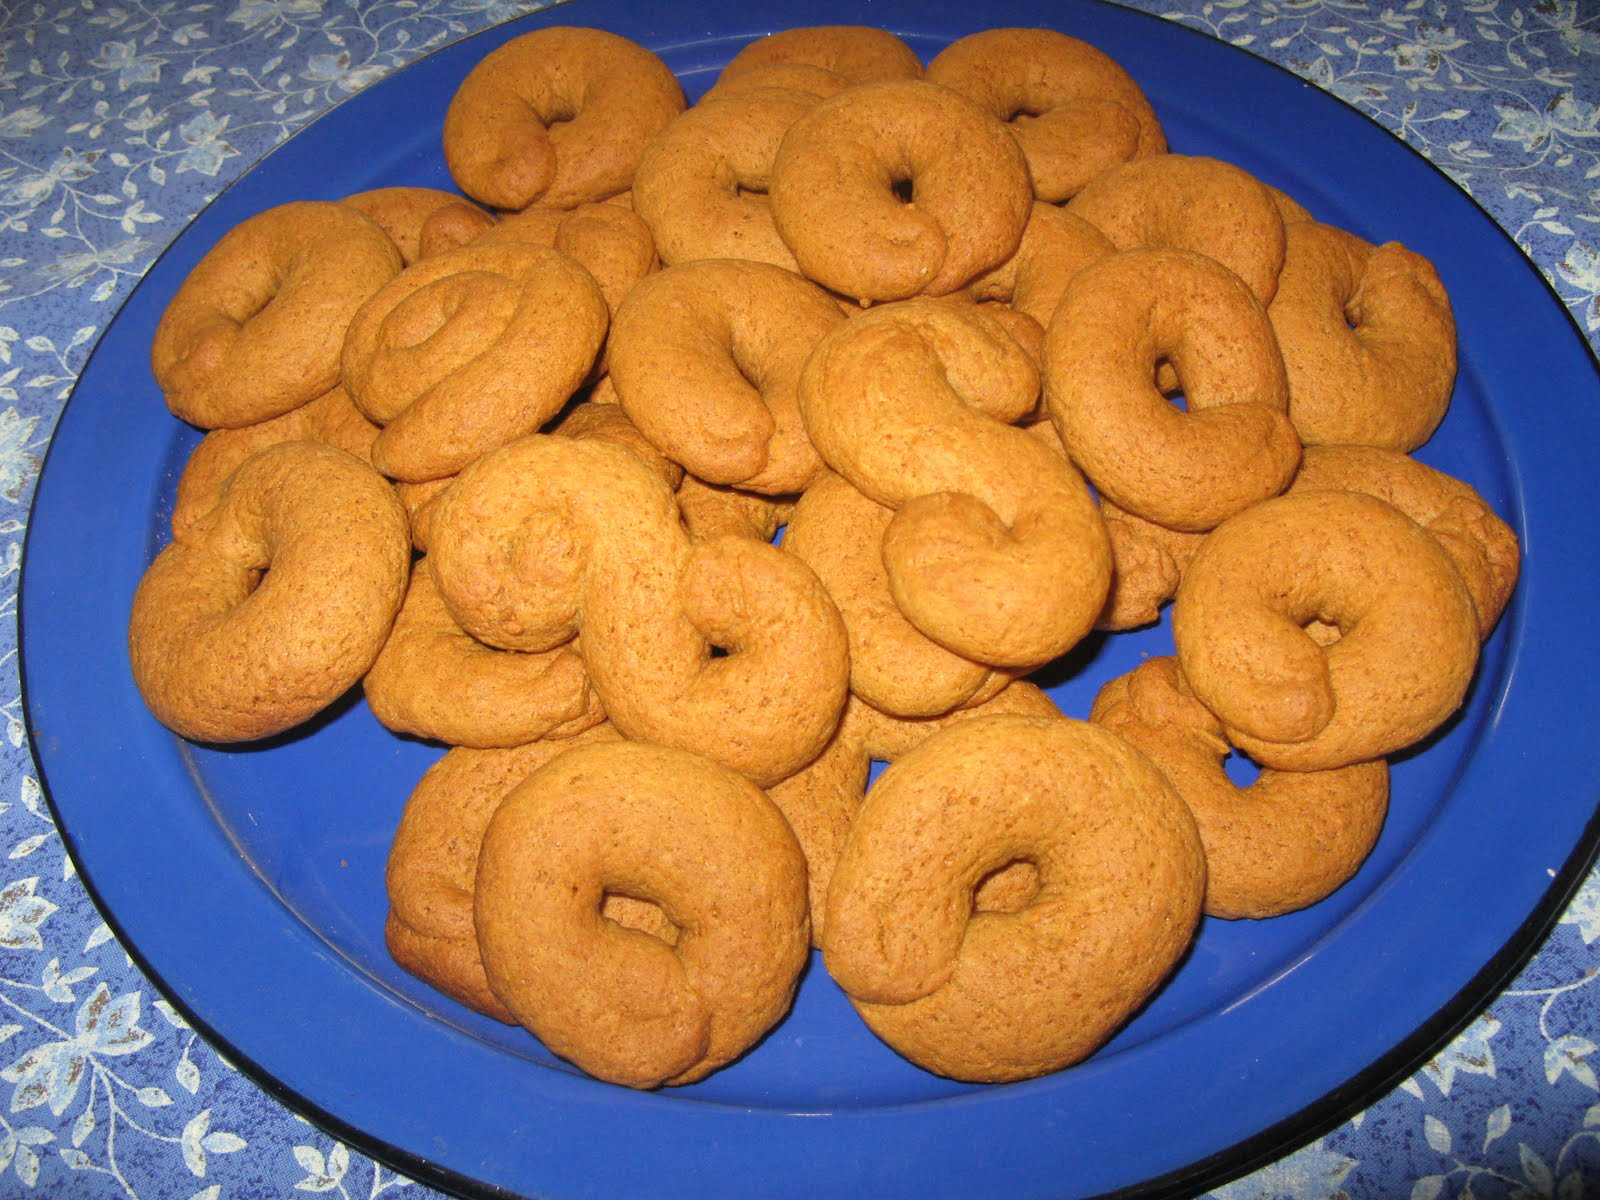 ... -Style Koulouria - Spiced Easter Cookies made with Olive Oil